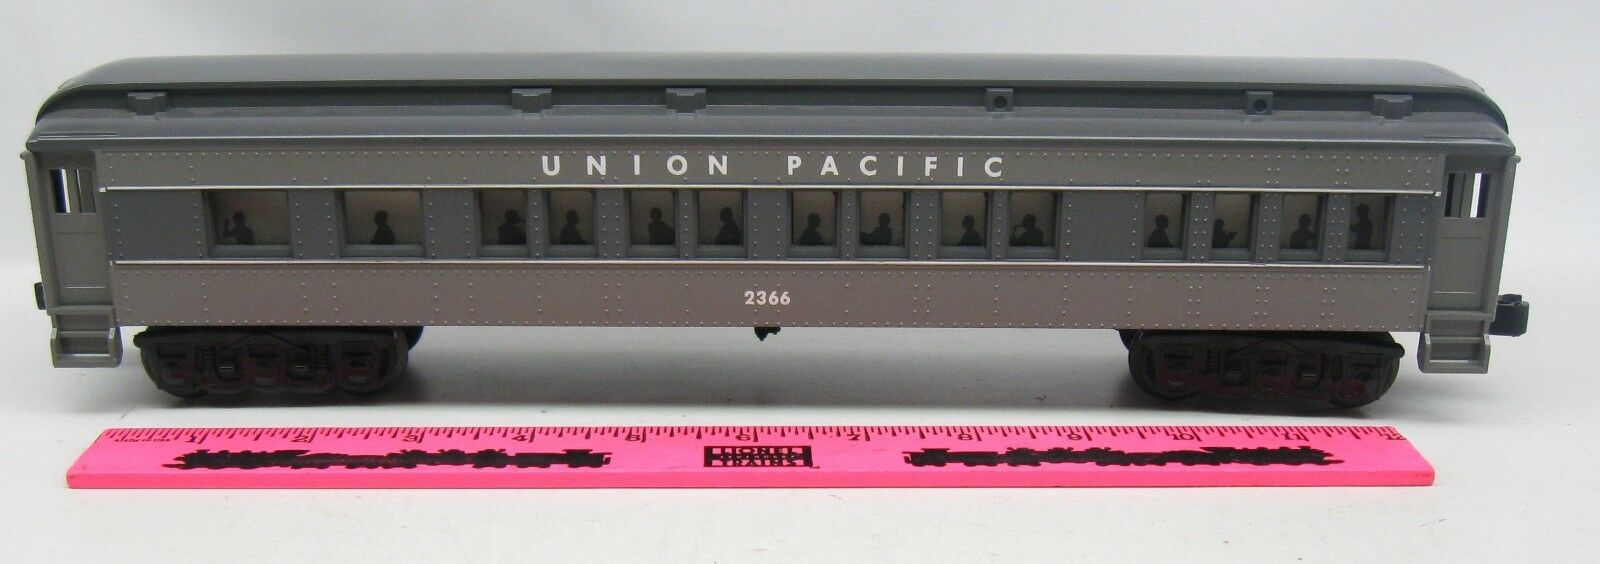 Lionel, K-line, Williams  Union Pacific 2366 Passenger Car